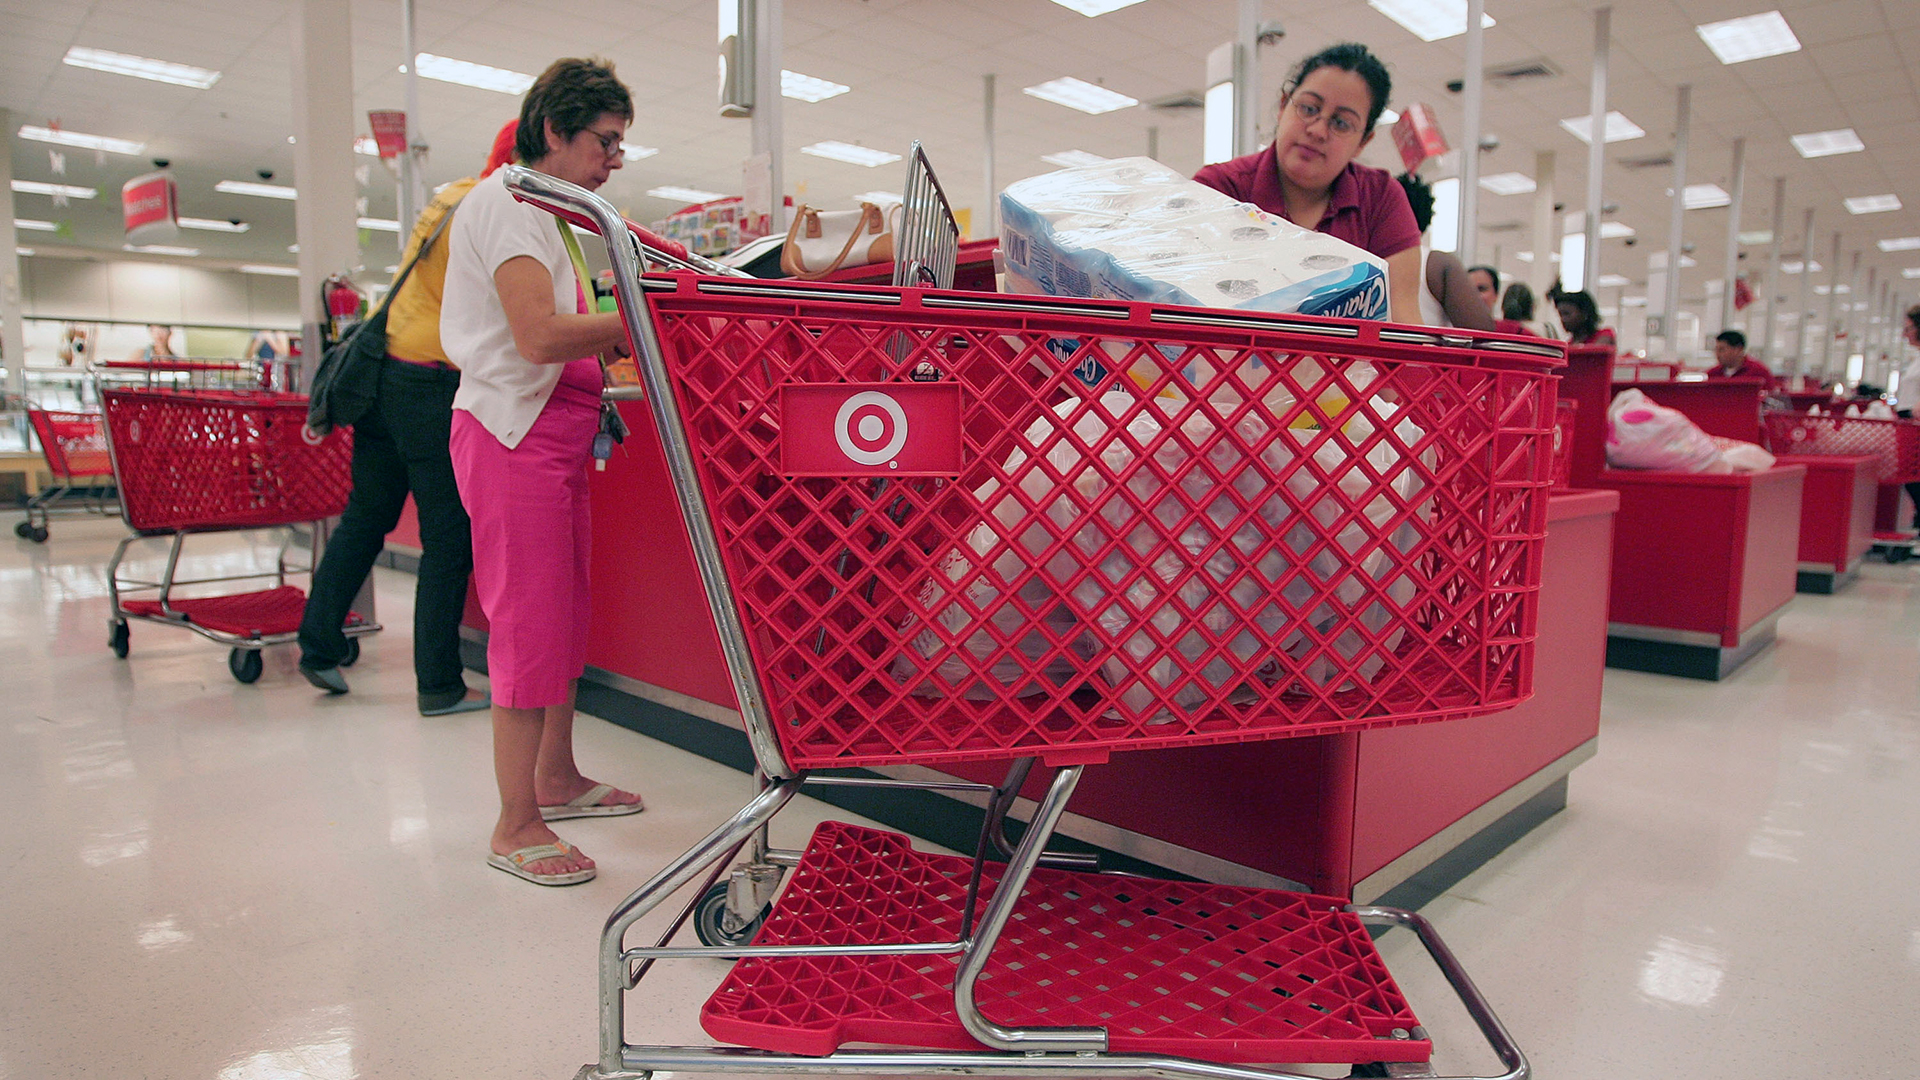 Target hiring over 130,000 seasonal employees